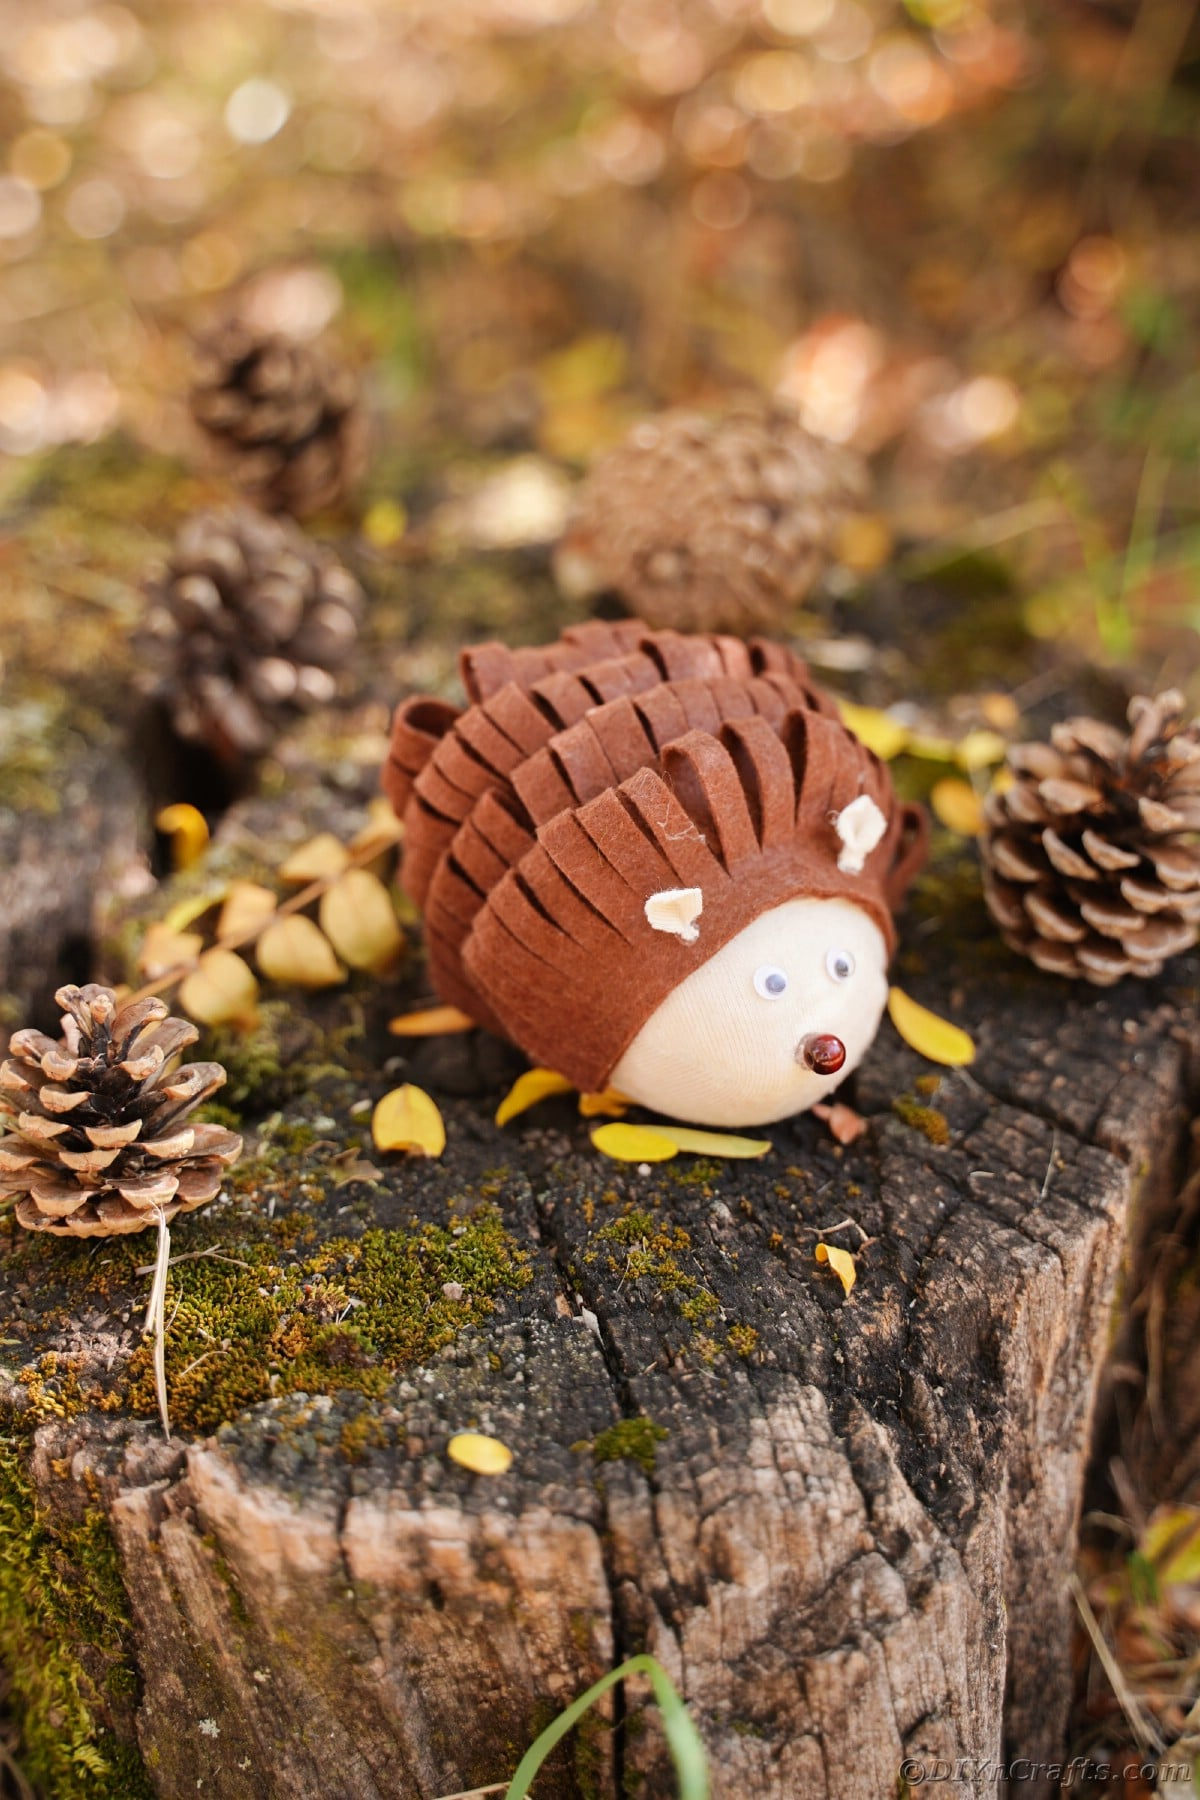 Brown and tan toy critter on stump by pinecones